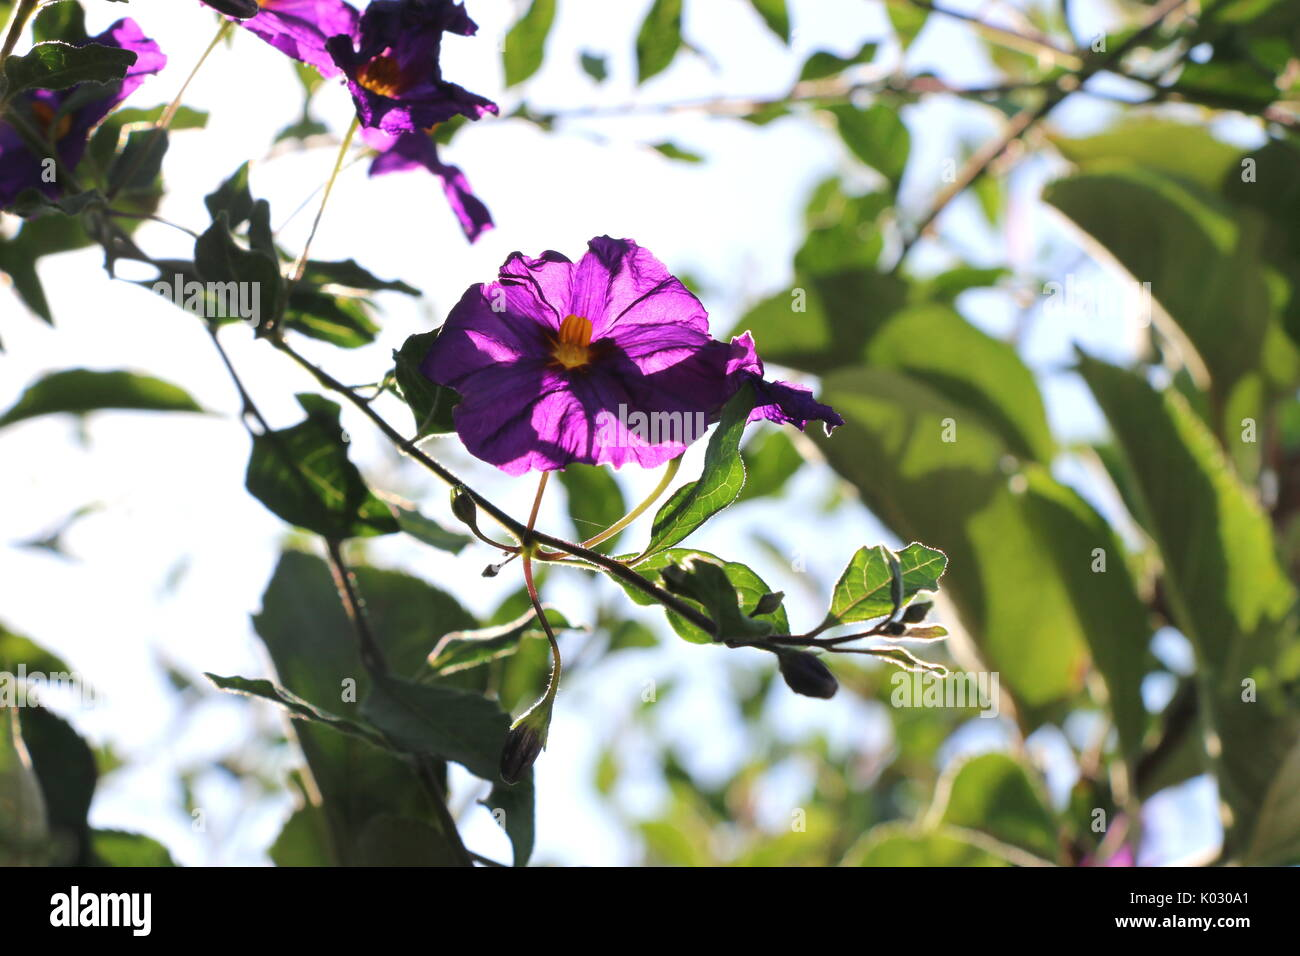 Delicate purple morning glory flower, backlit against the sky. - Stock Image